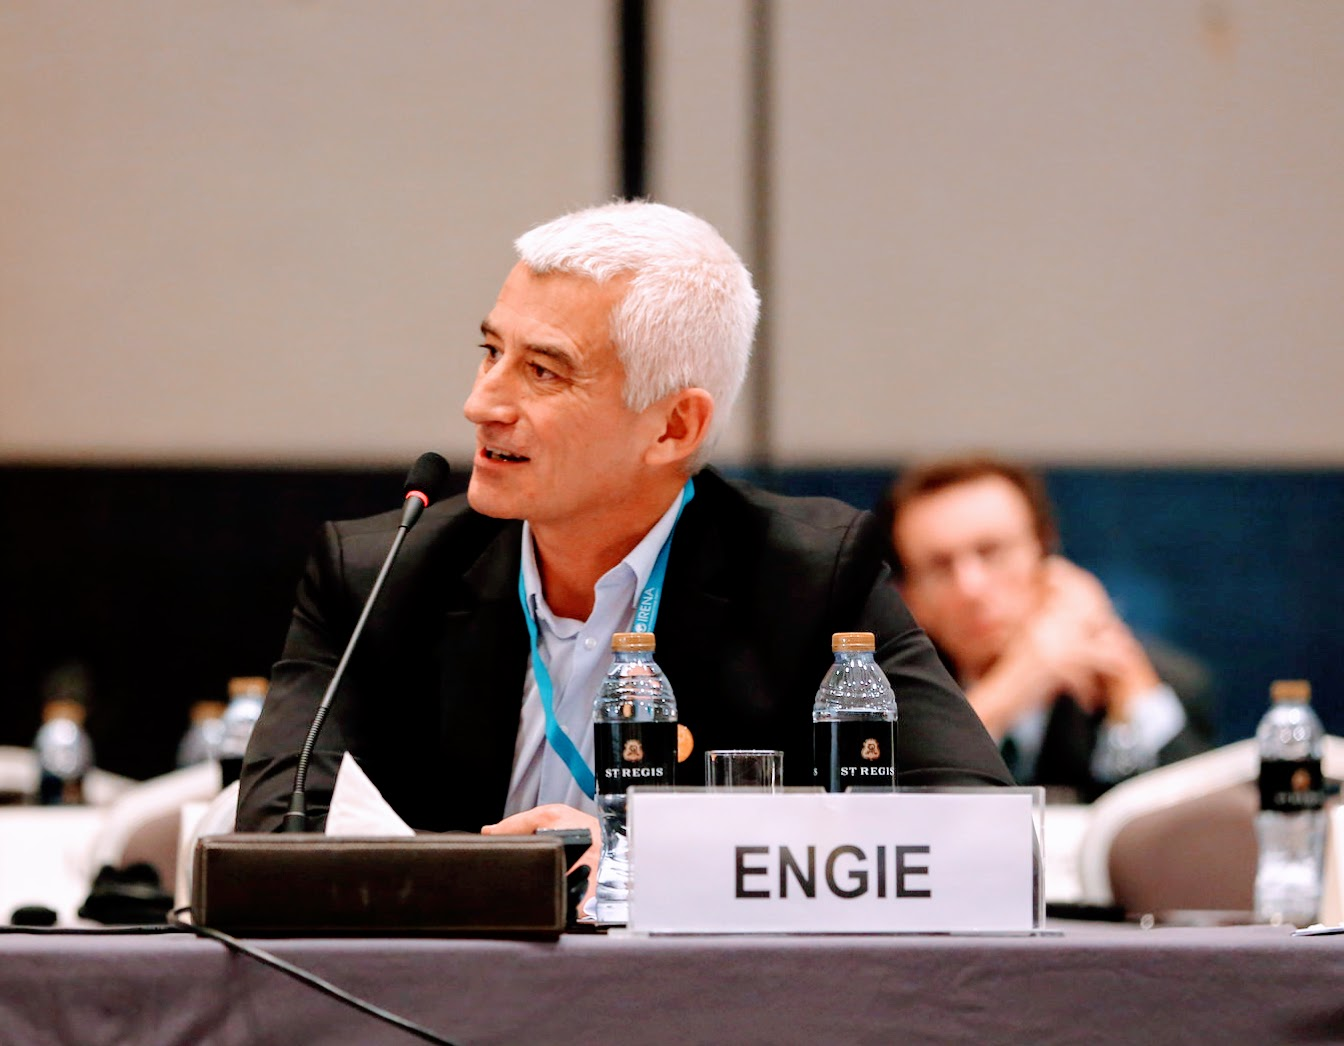 Thierry Lepercq, Engie's Executive Vice President of Research, Technology and Innovation